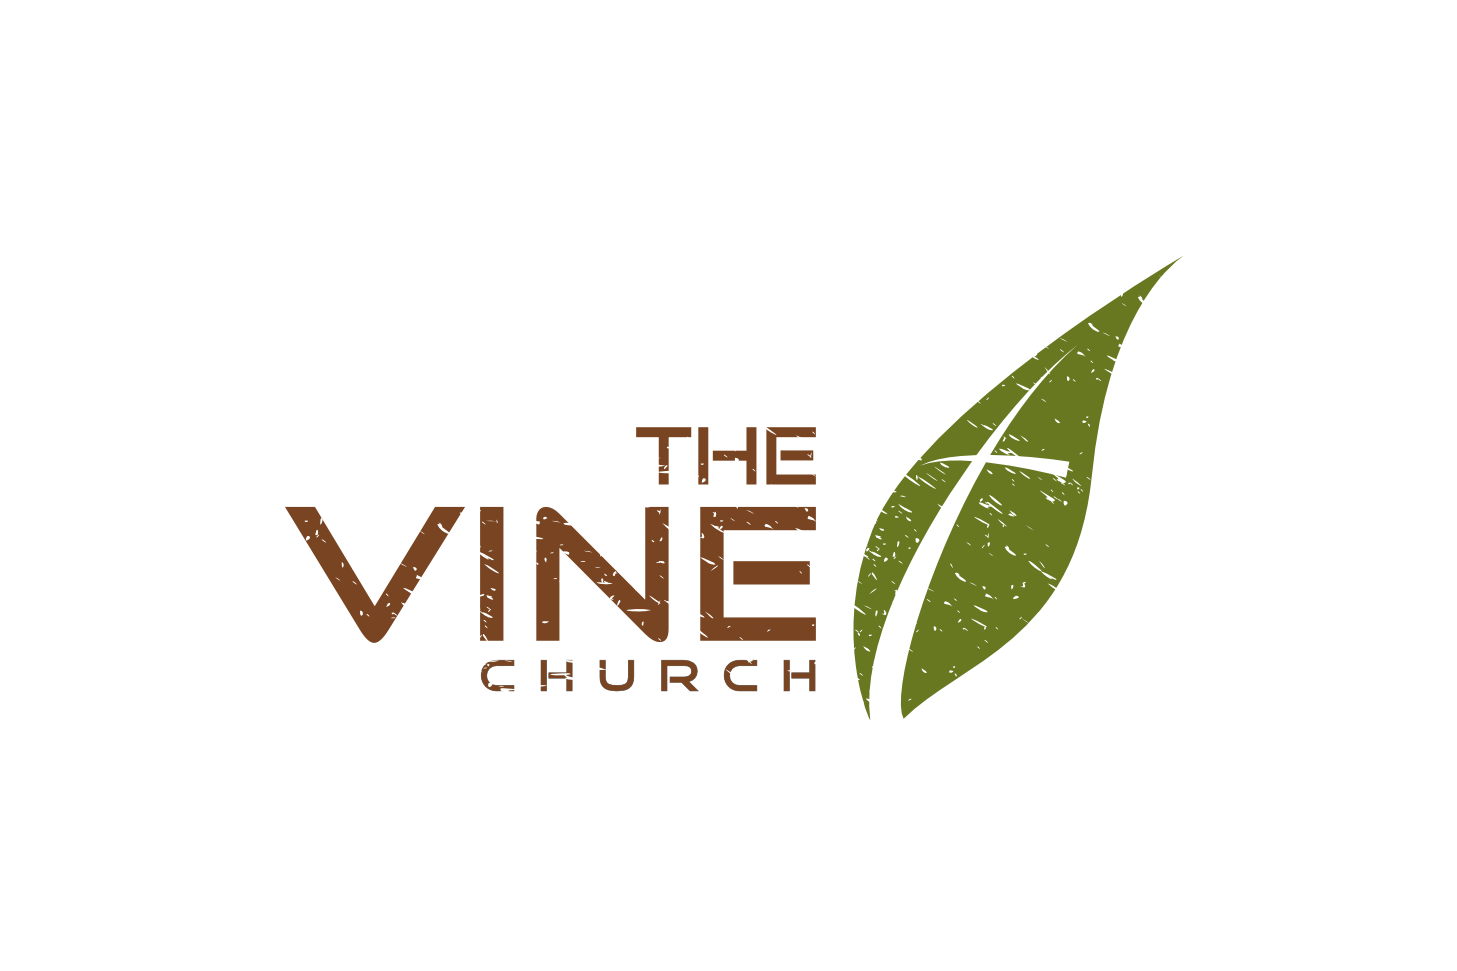 the Vine - Organic logo design for an organic church